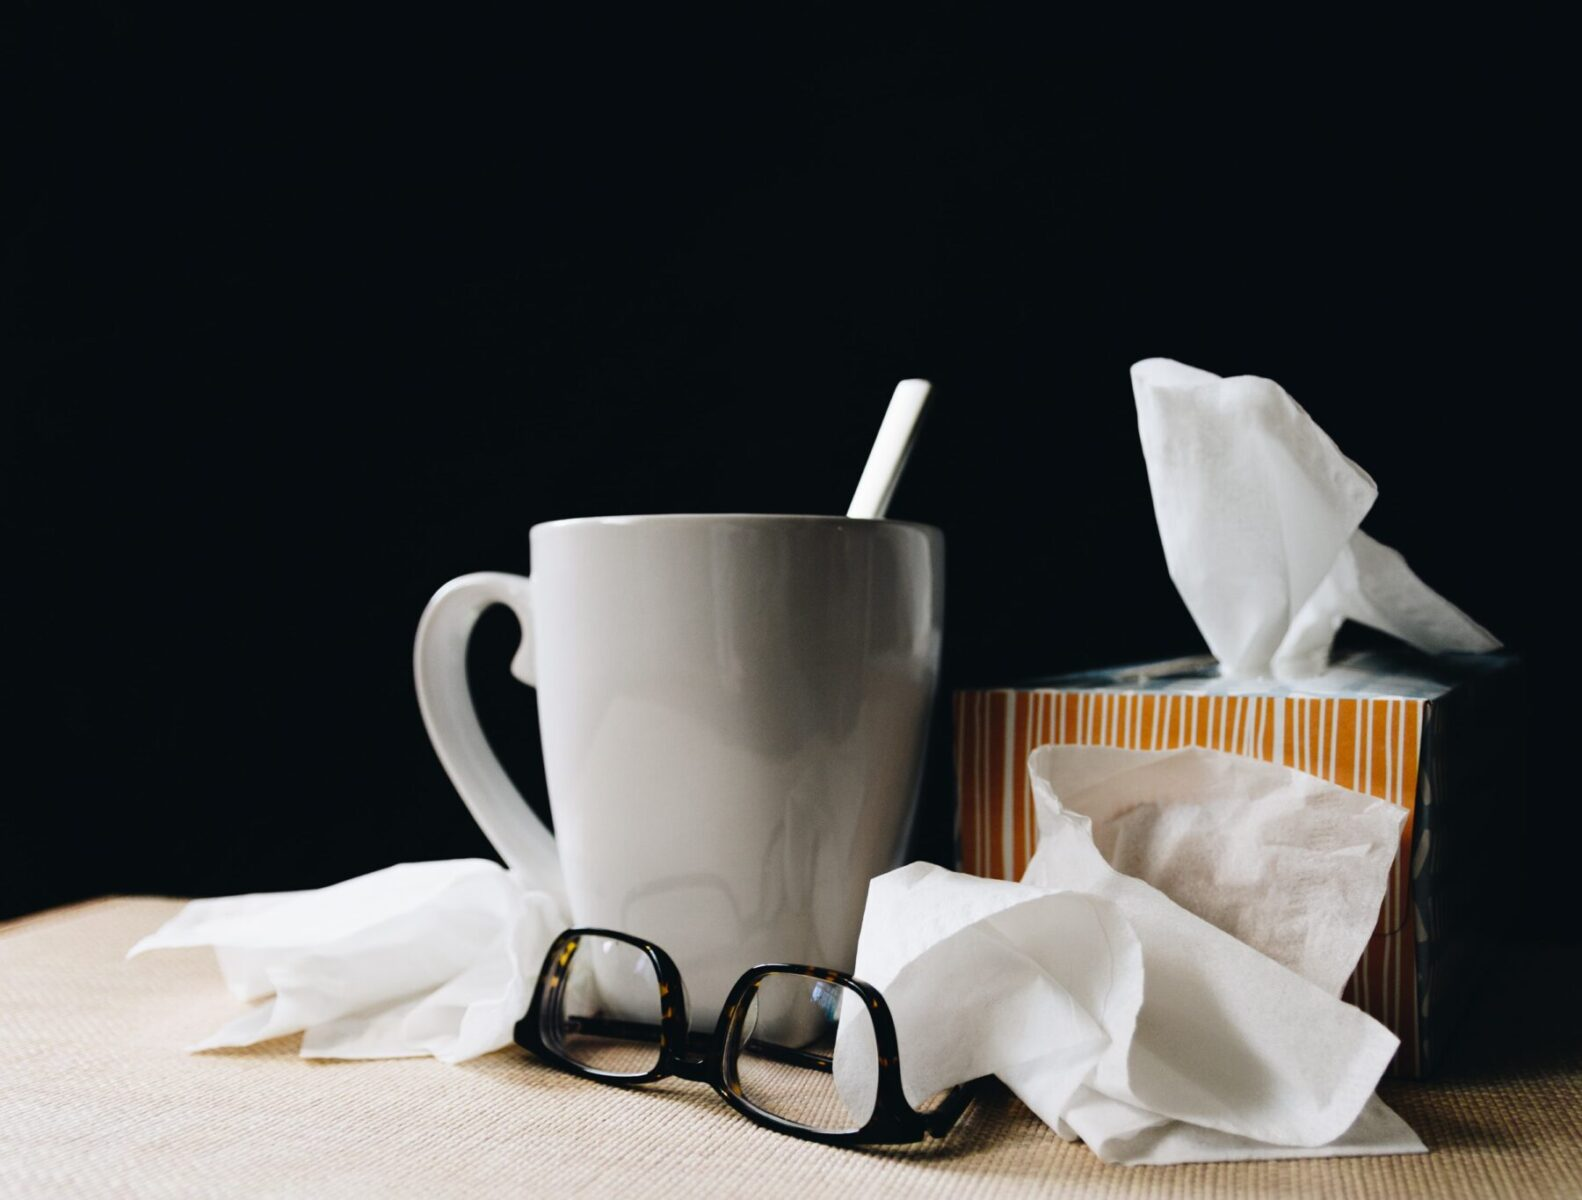 Cold and Flu Prevention Tips for the Elderly